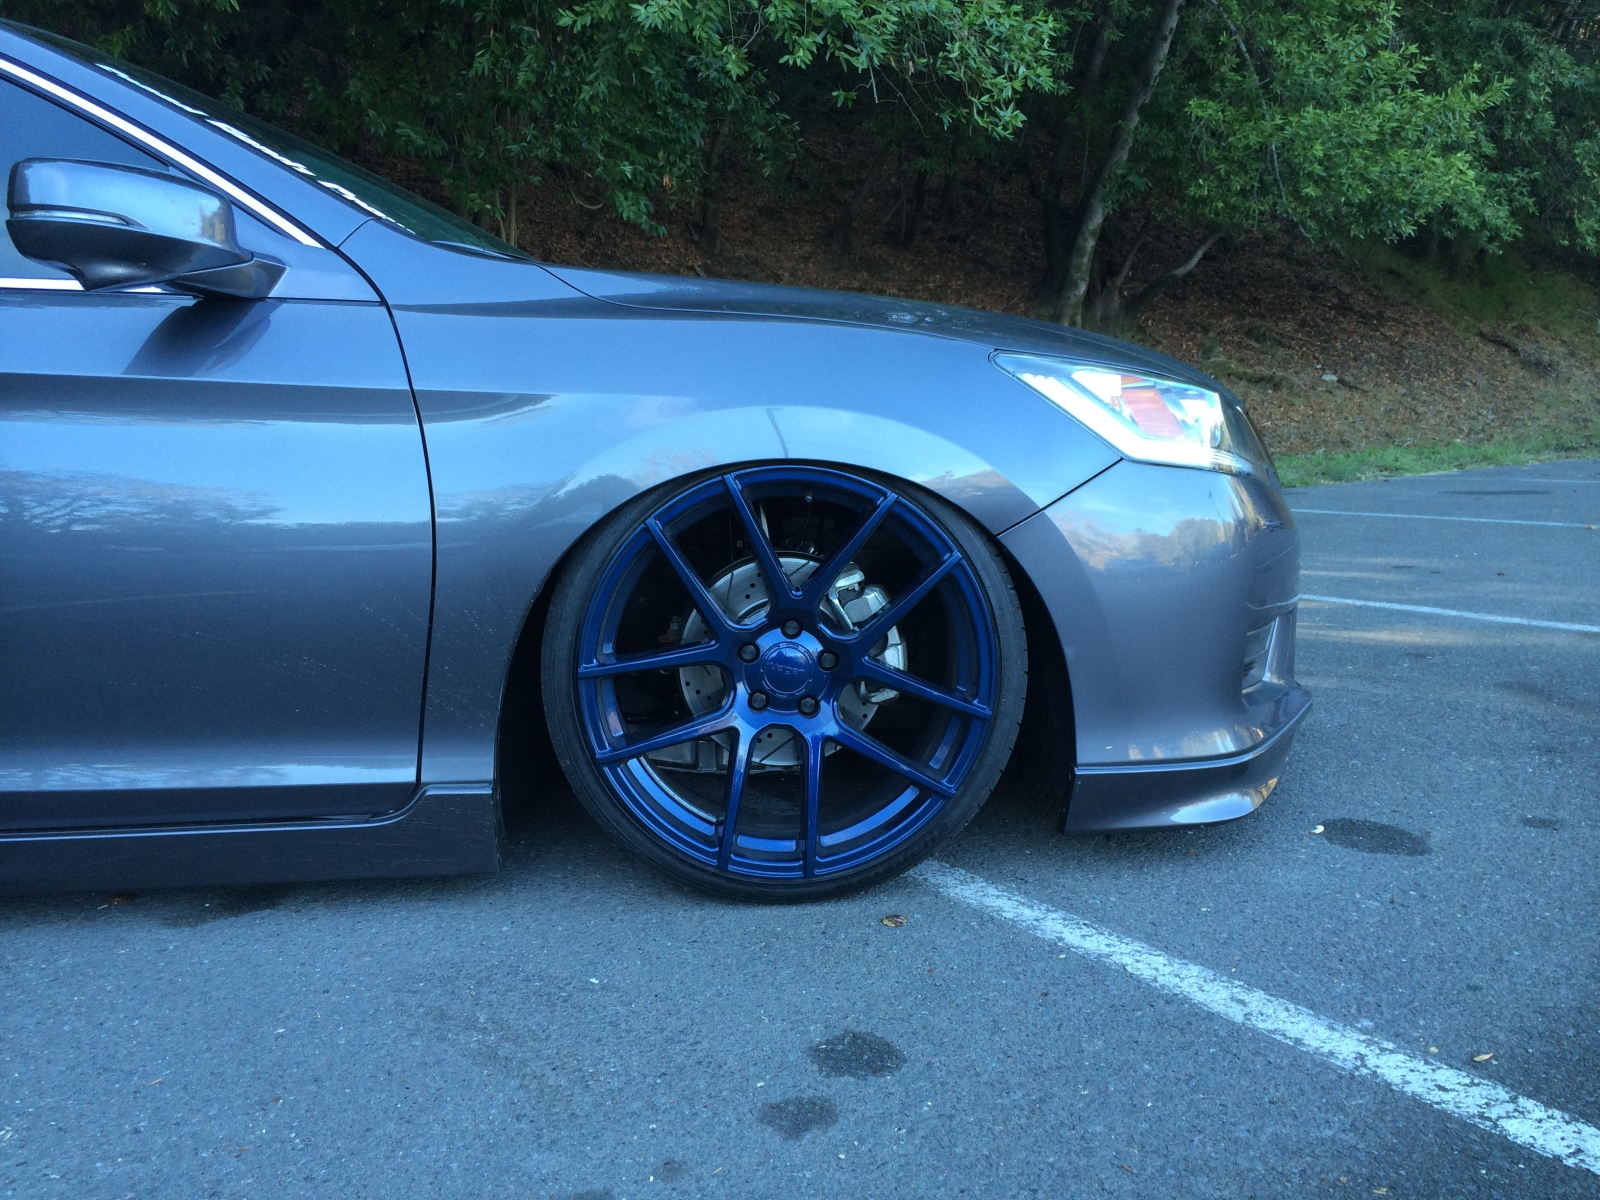 Honda Accord Custom Wheels Velgen Vmb5 20x9 0 Et 35